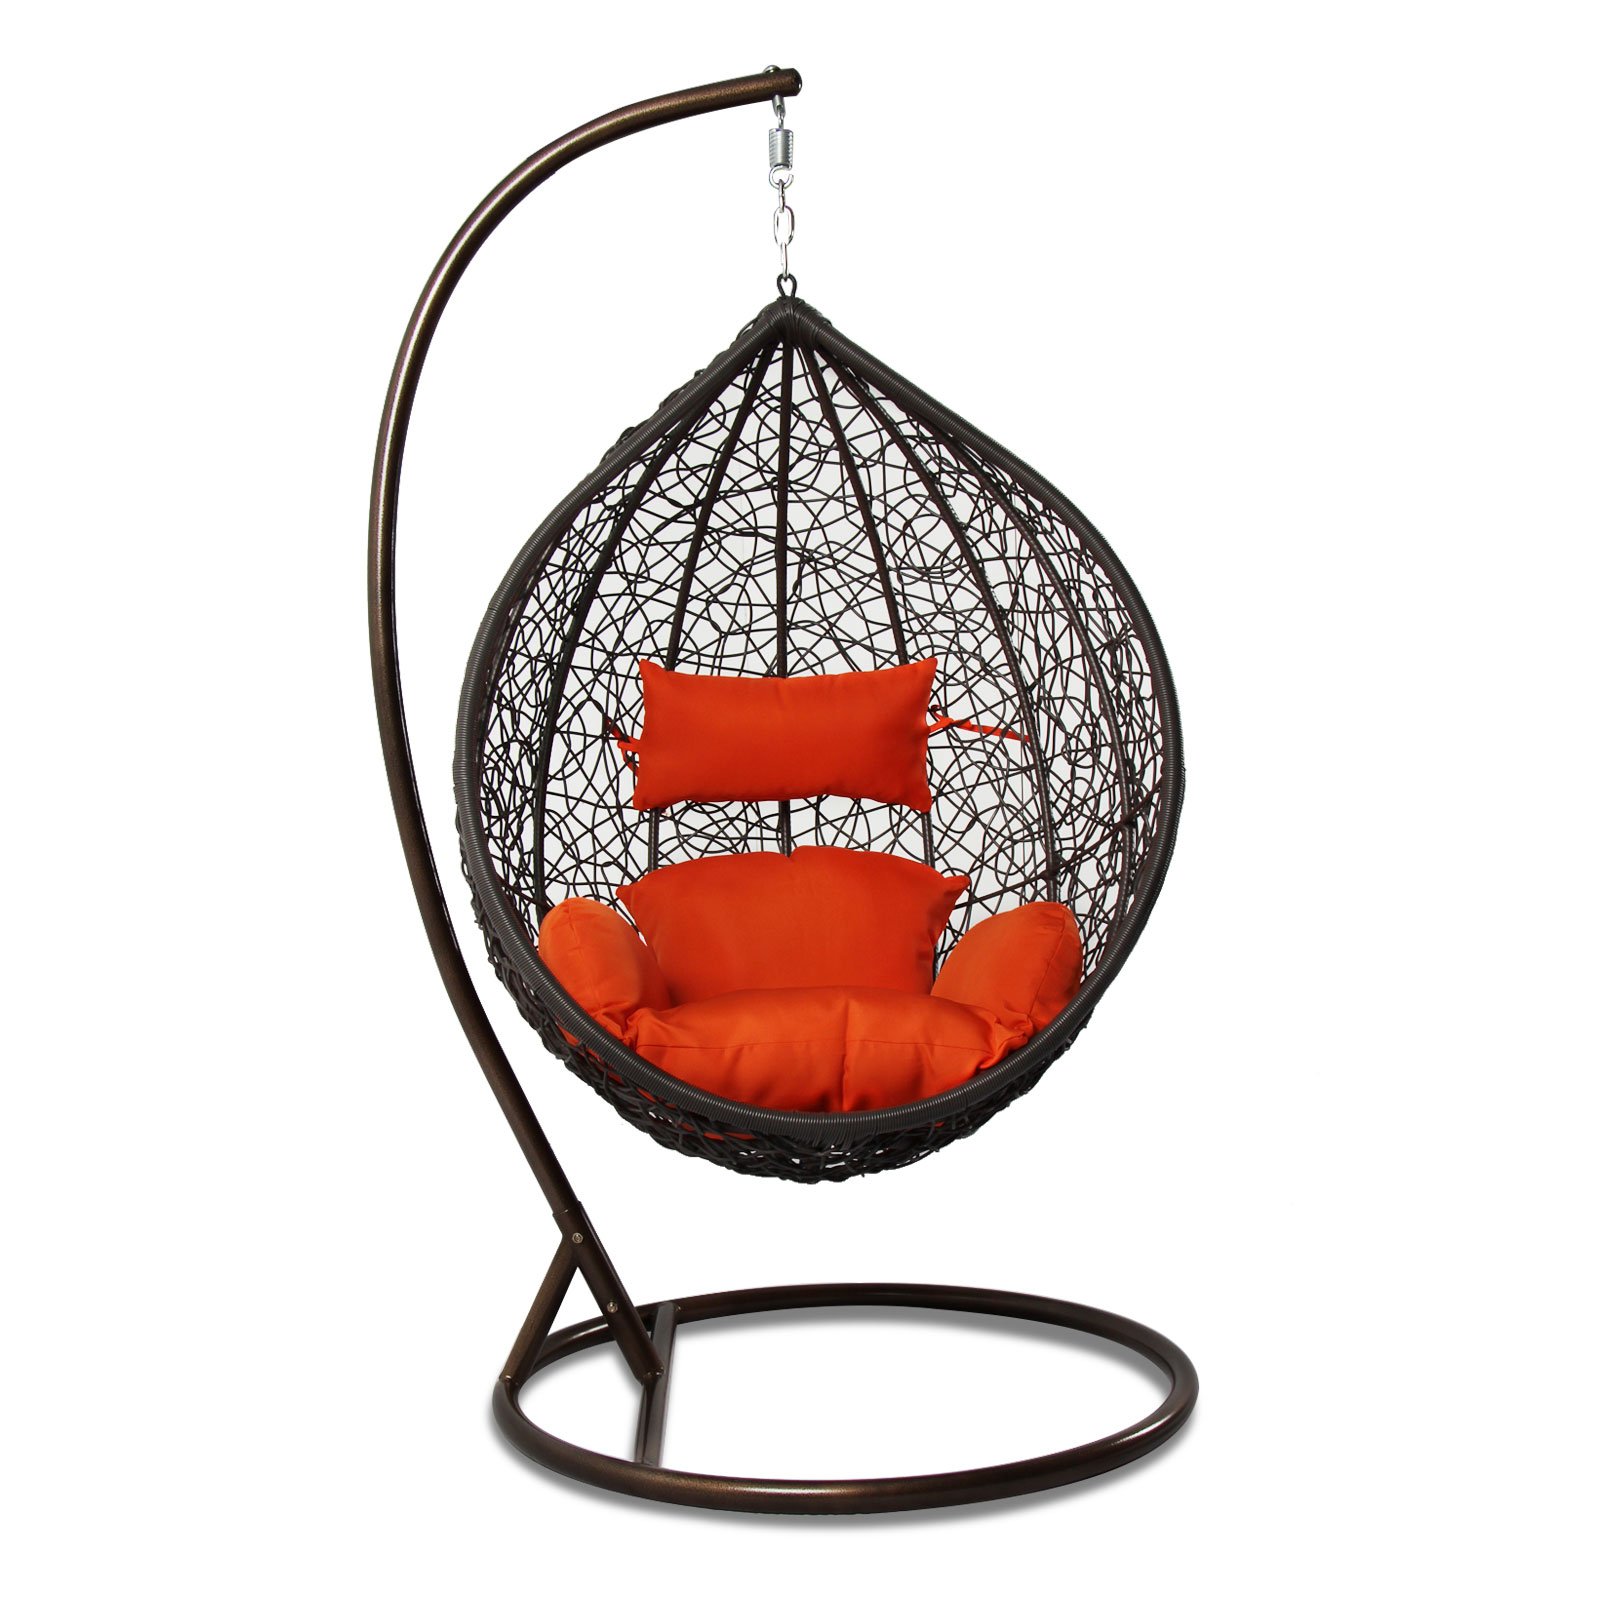 outdoor patio furniture brown swing chair wicker rattan. Black Bedroom Furniture Sets. Home Design Ideas